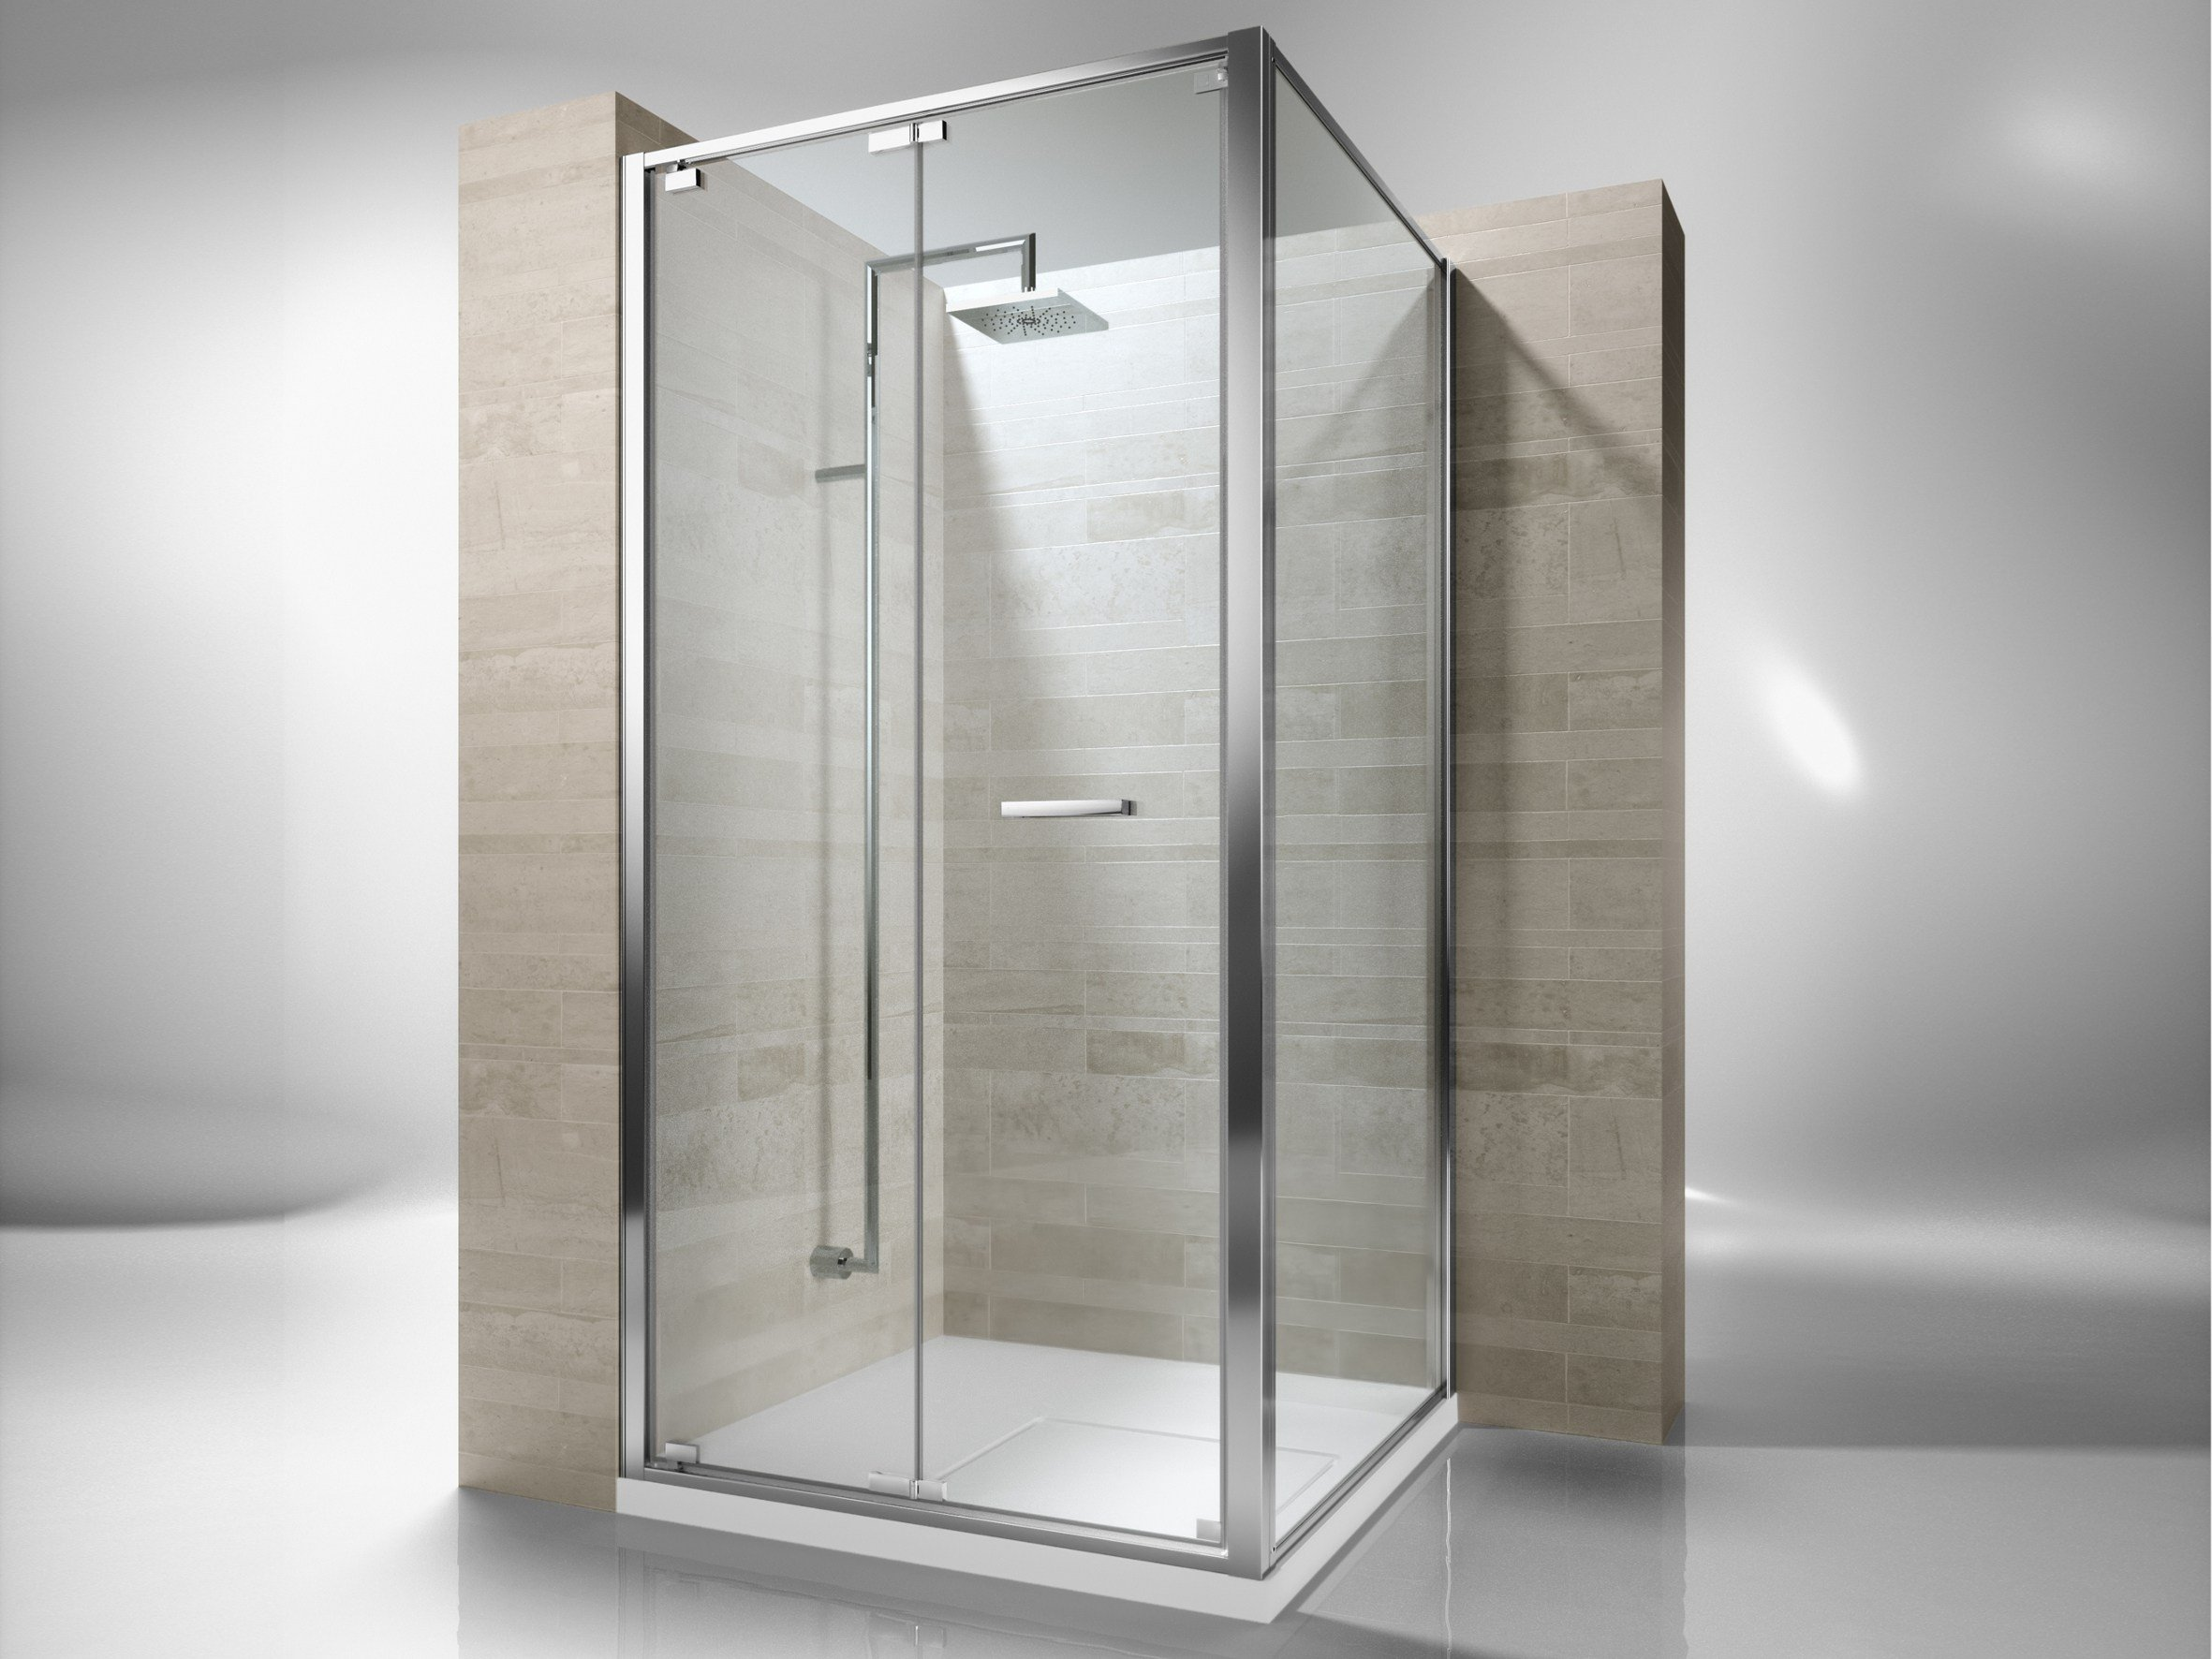 Cabine de douche d 39 angle sur mesure en verre tremp junior gn gf collecti - Douche en verre trempe ...